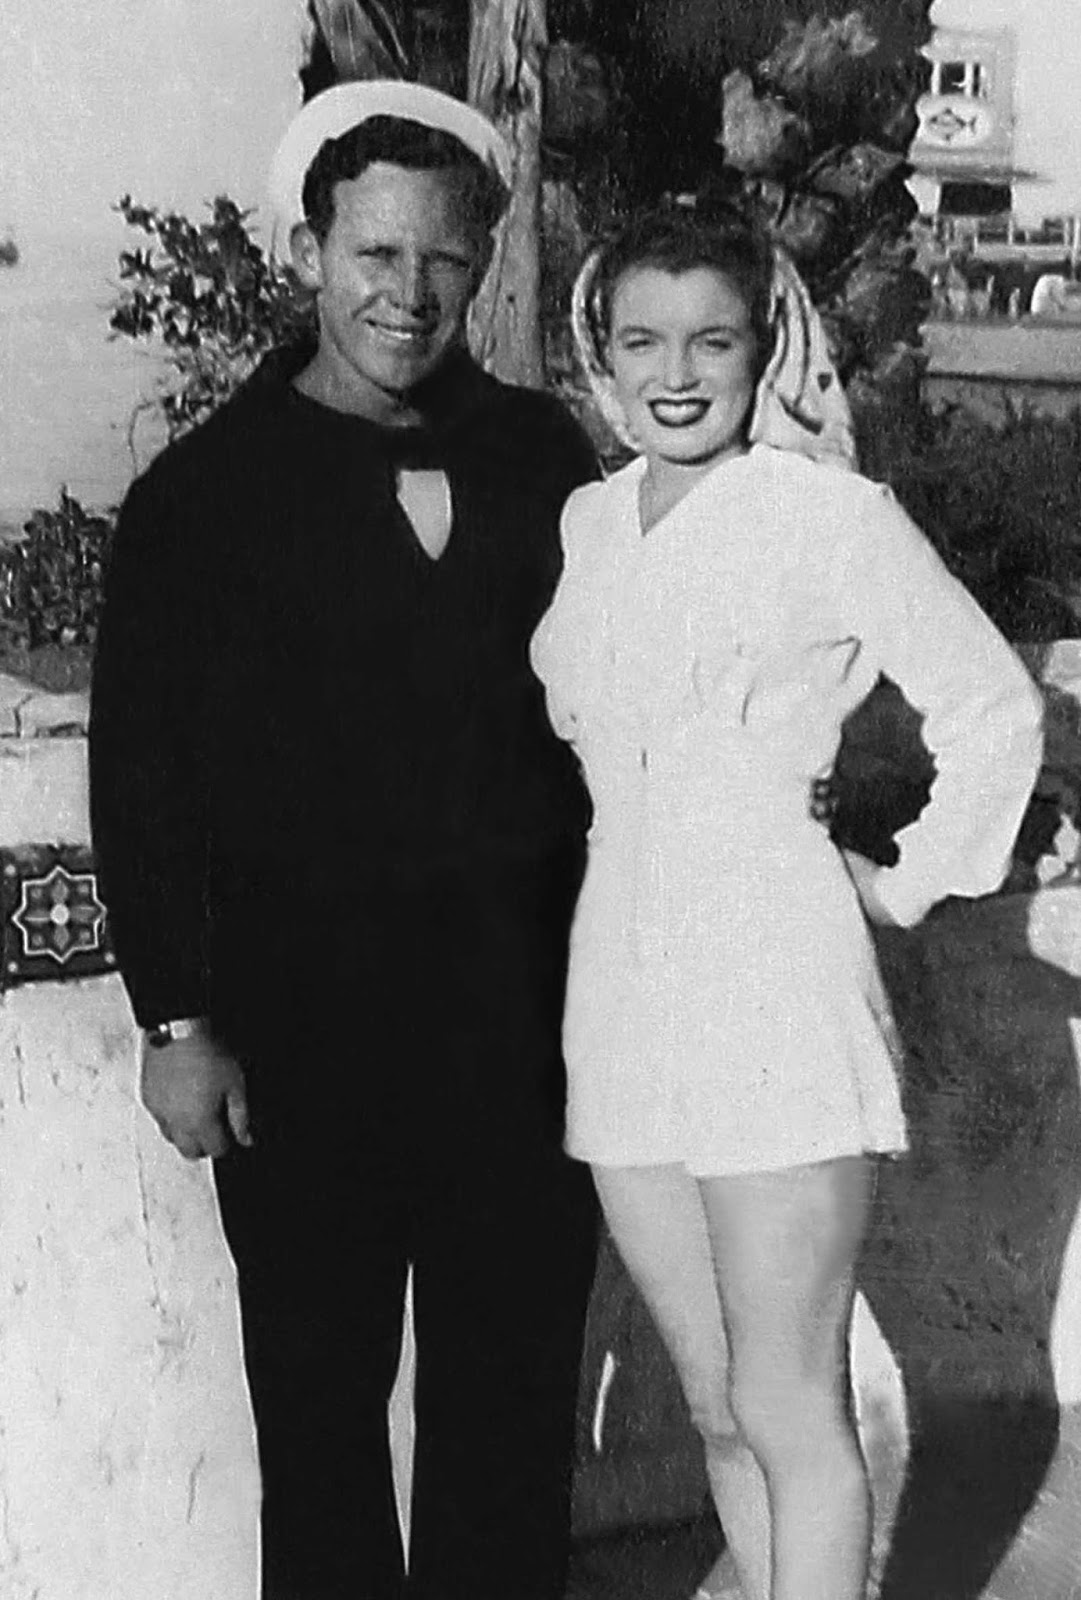 Now his wife, Norma Jeane sometimes addressed her former